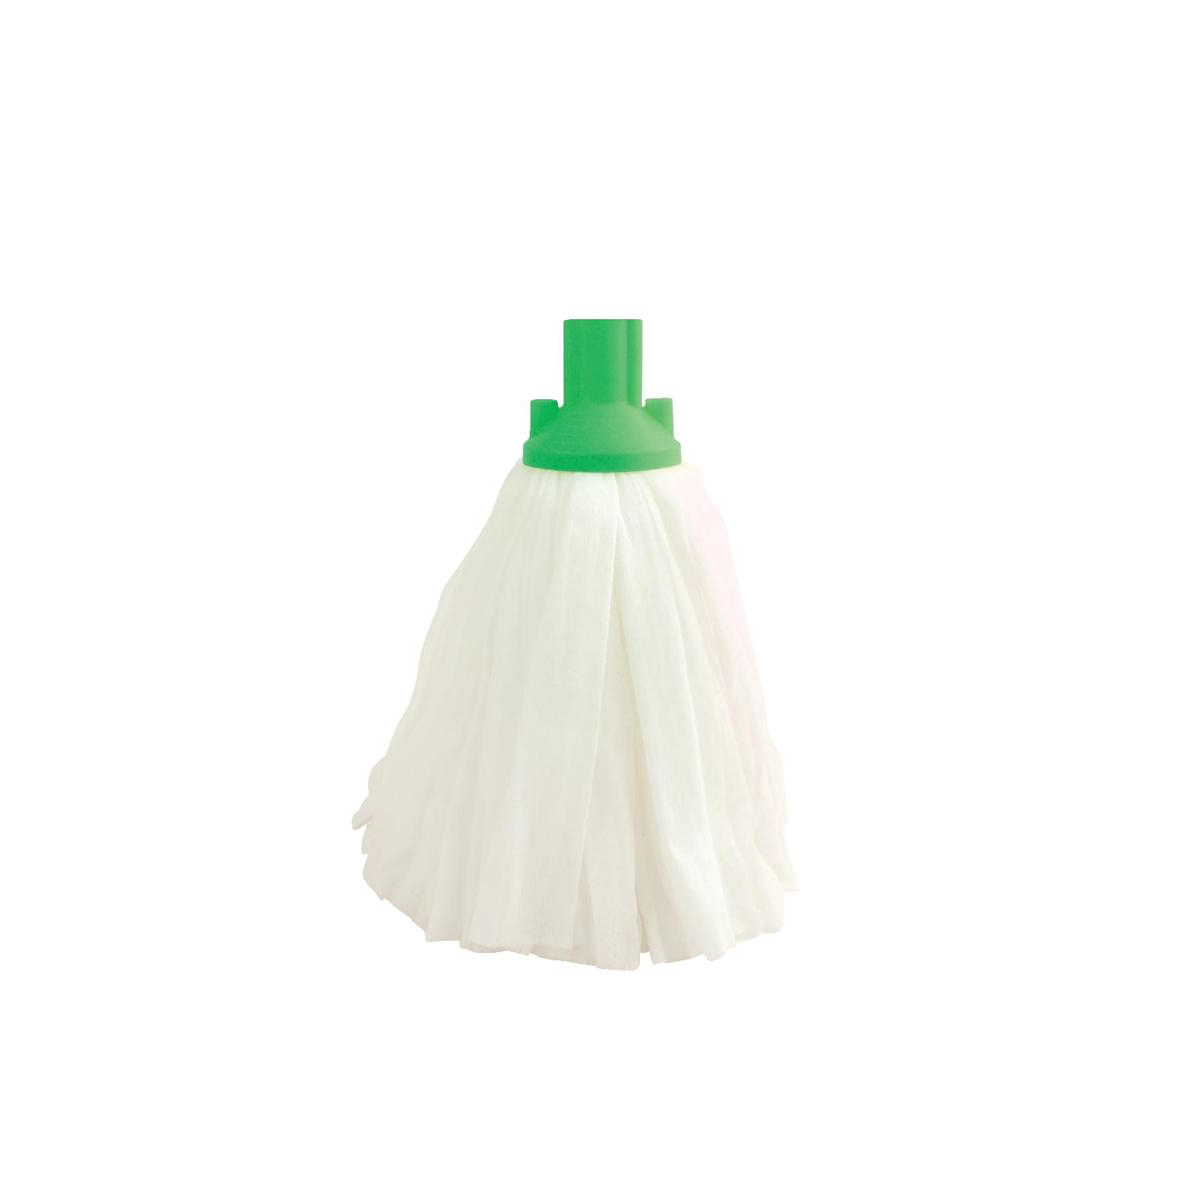 Bentley Disposable Socket Mop Head 120g Green Ref SPC/DSM120/G